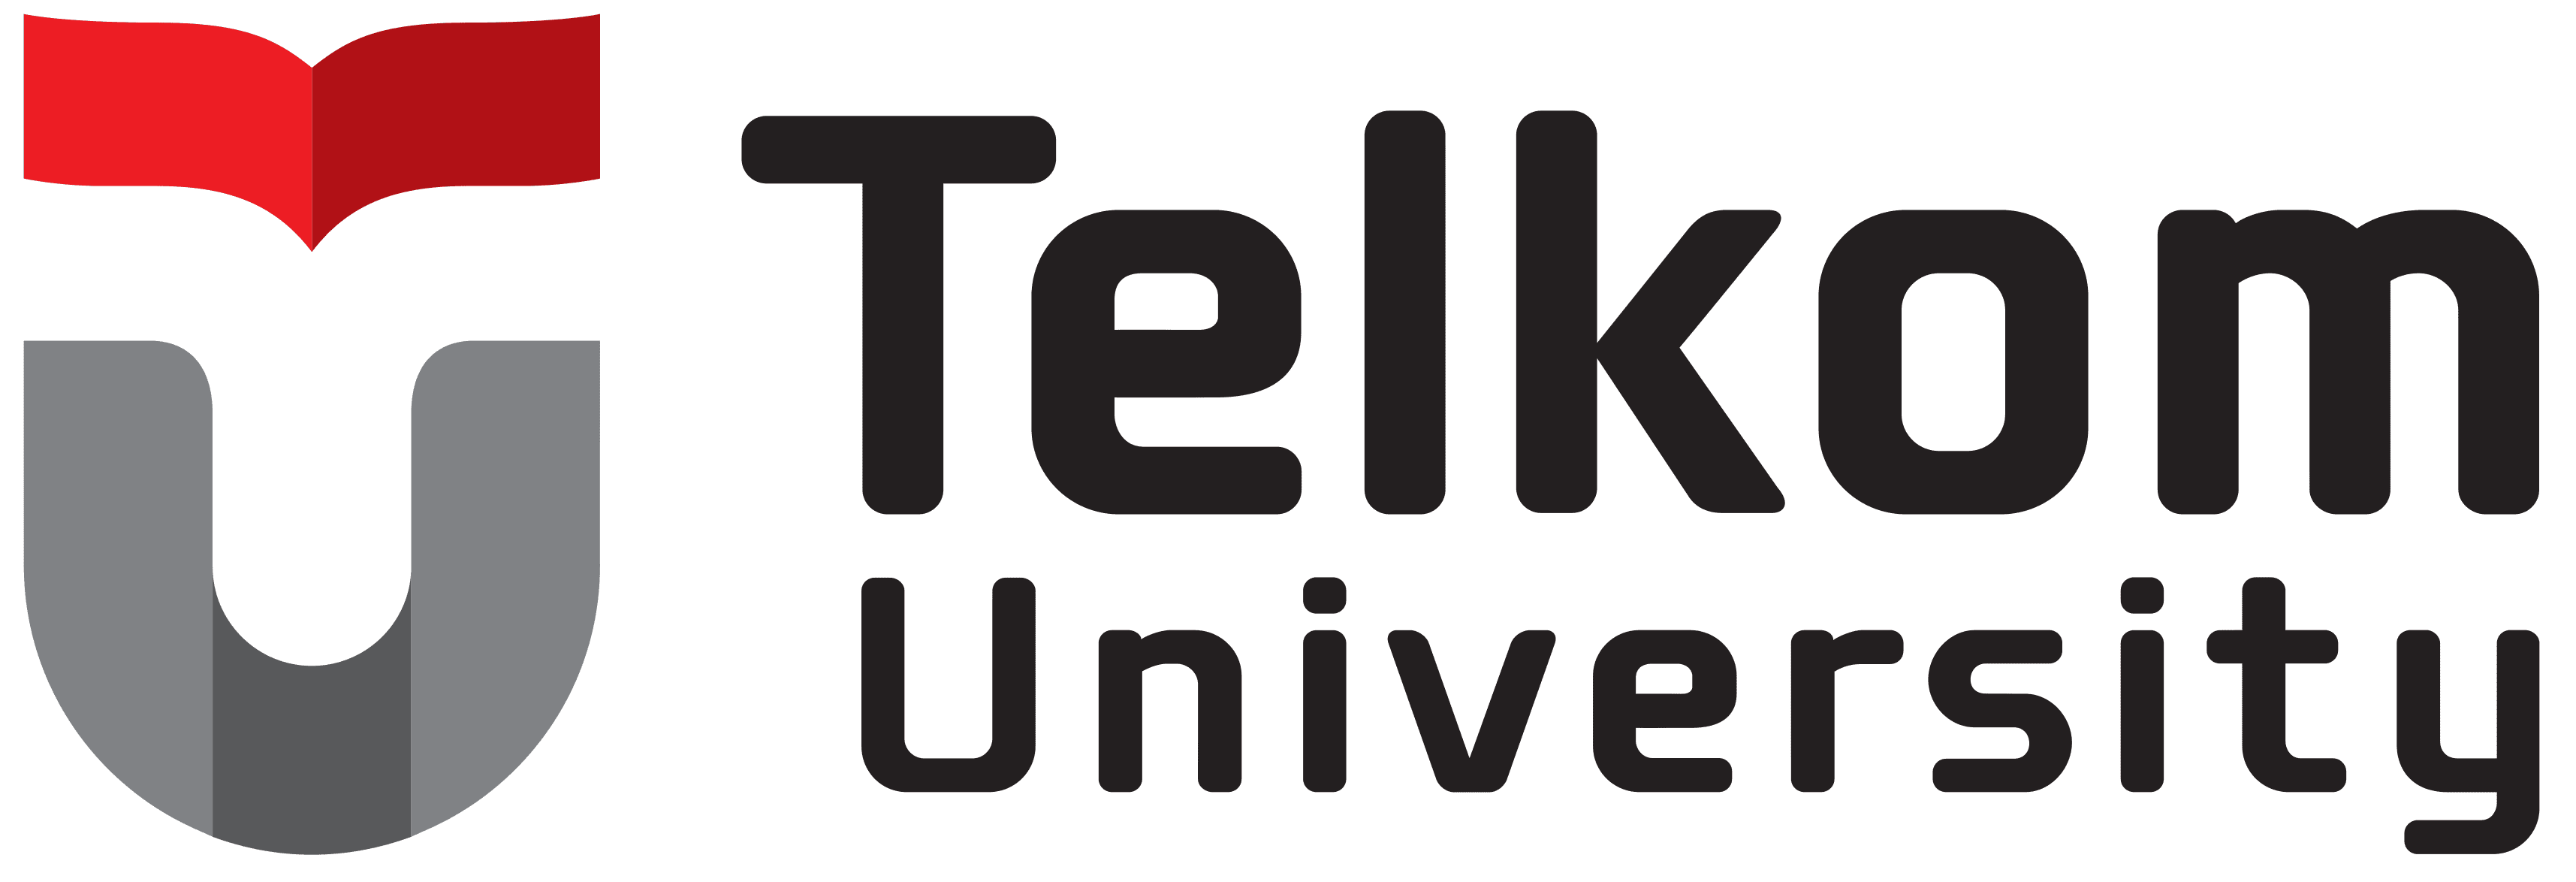 Telkom University The Best Private Universities in Indonesia